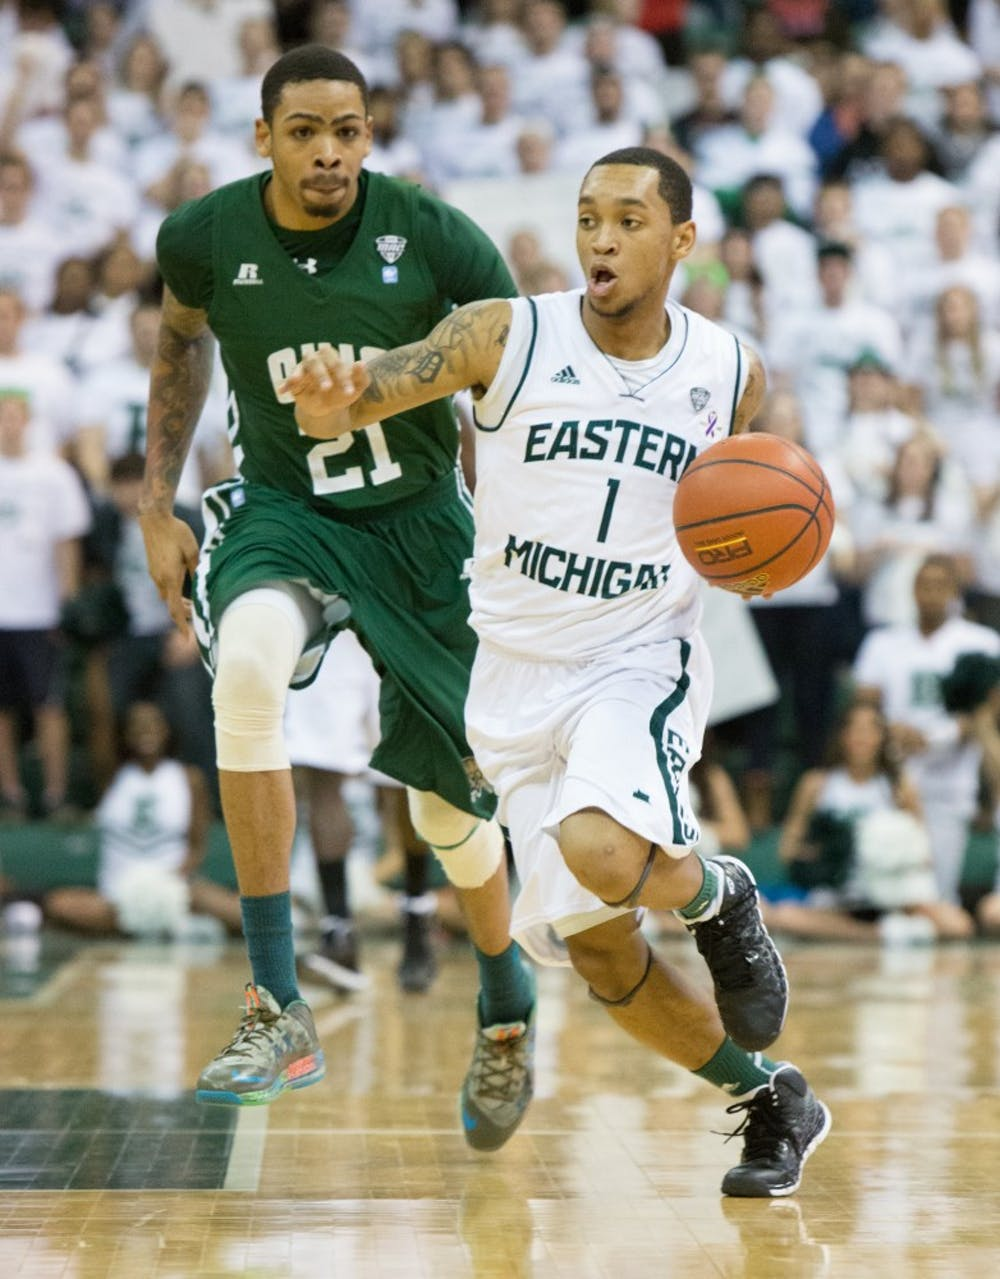 Ohio erases EMU's 13-point lead for comeback win